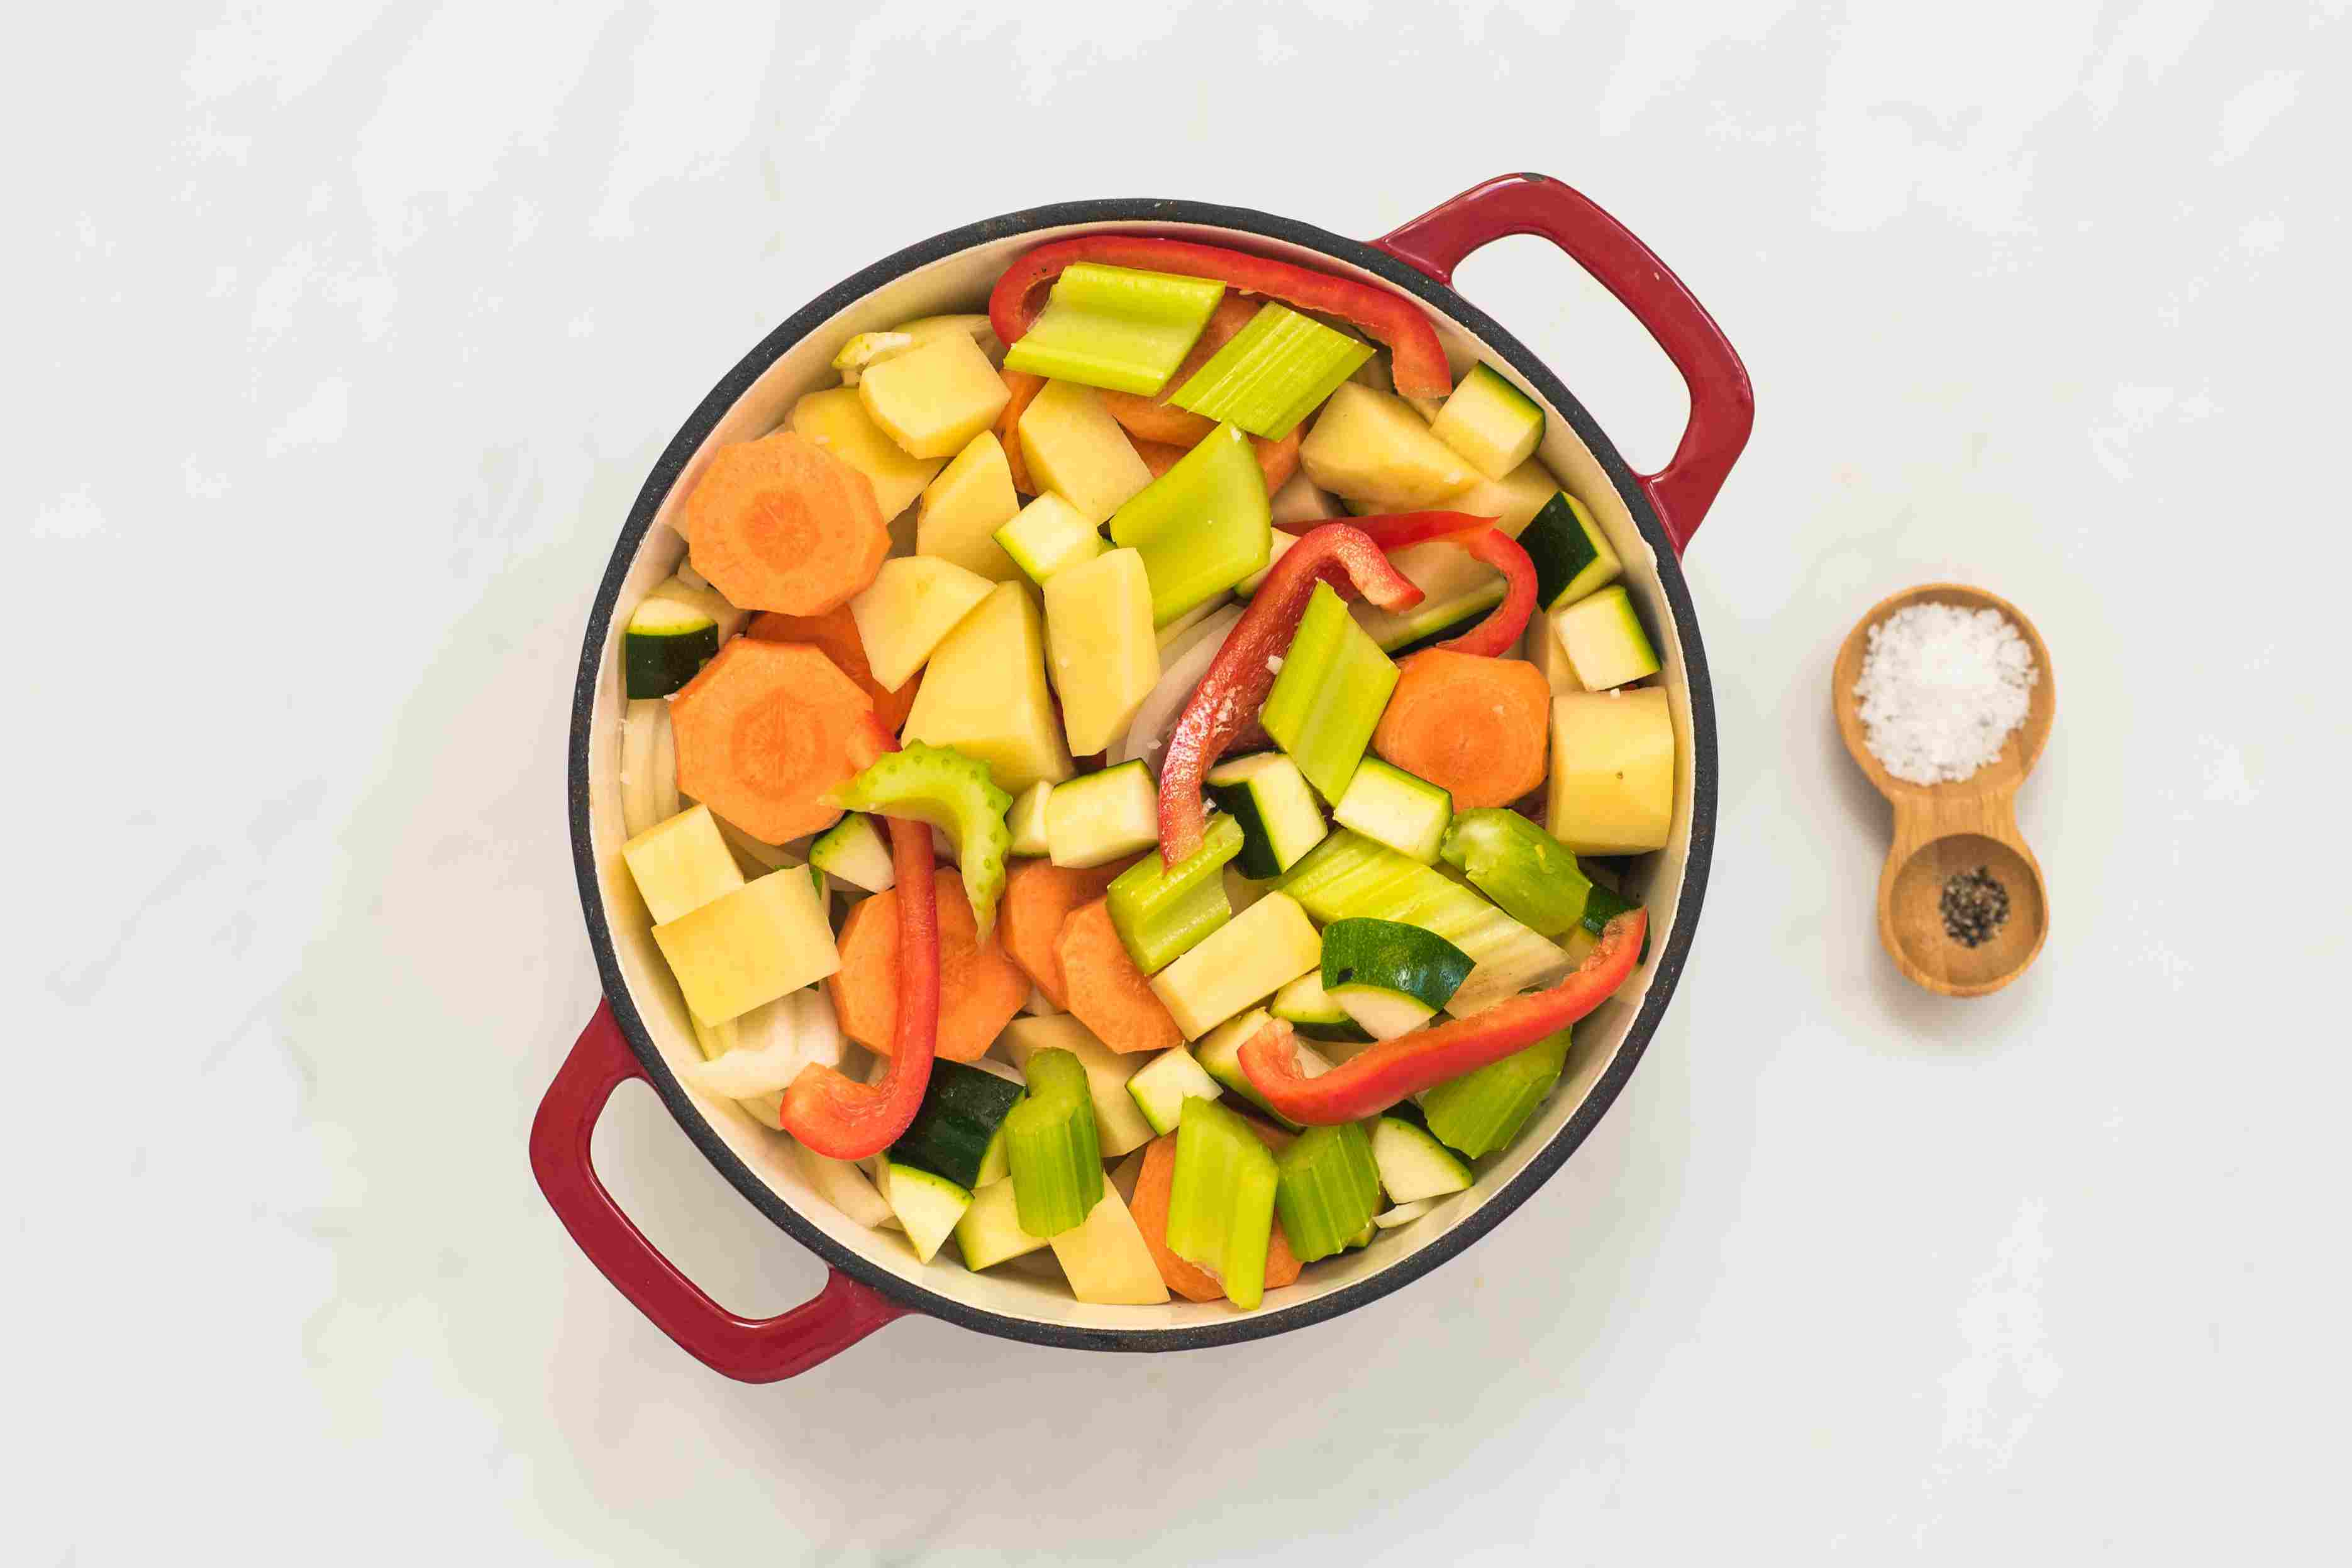 Place chicken and vegetables in pot